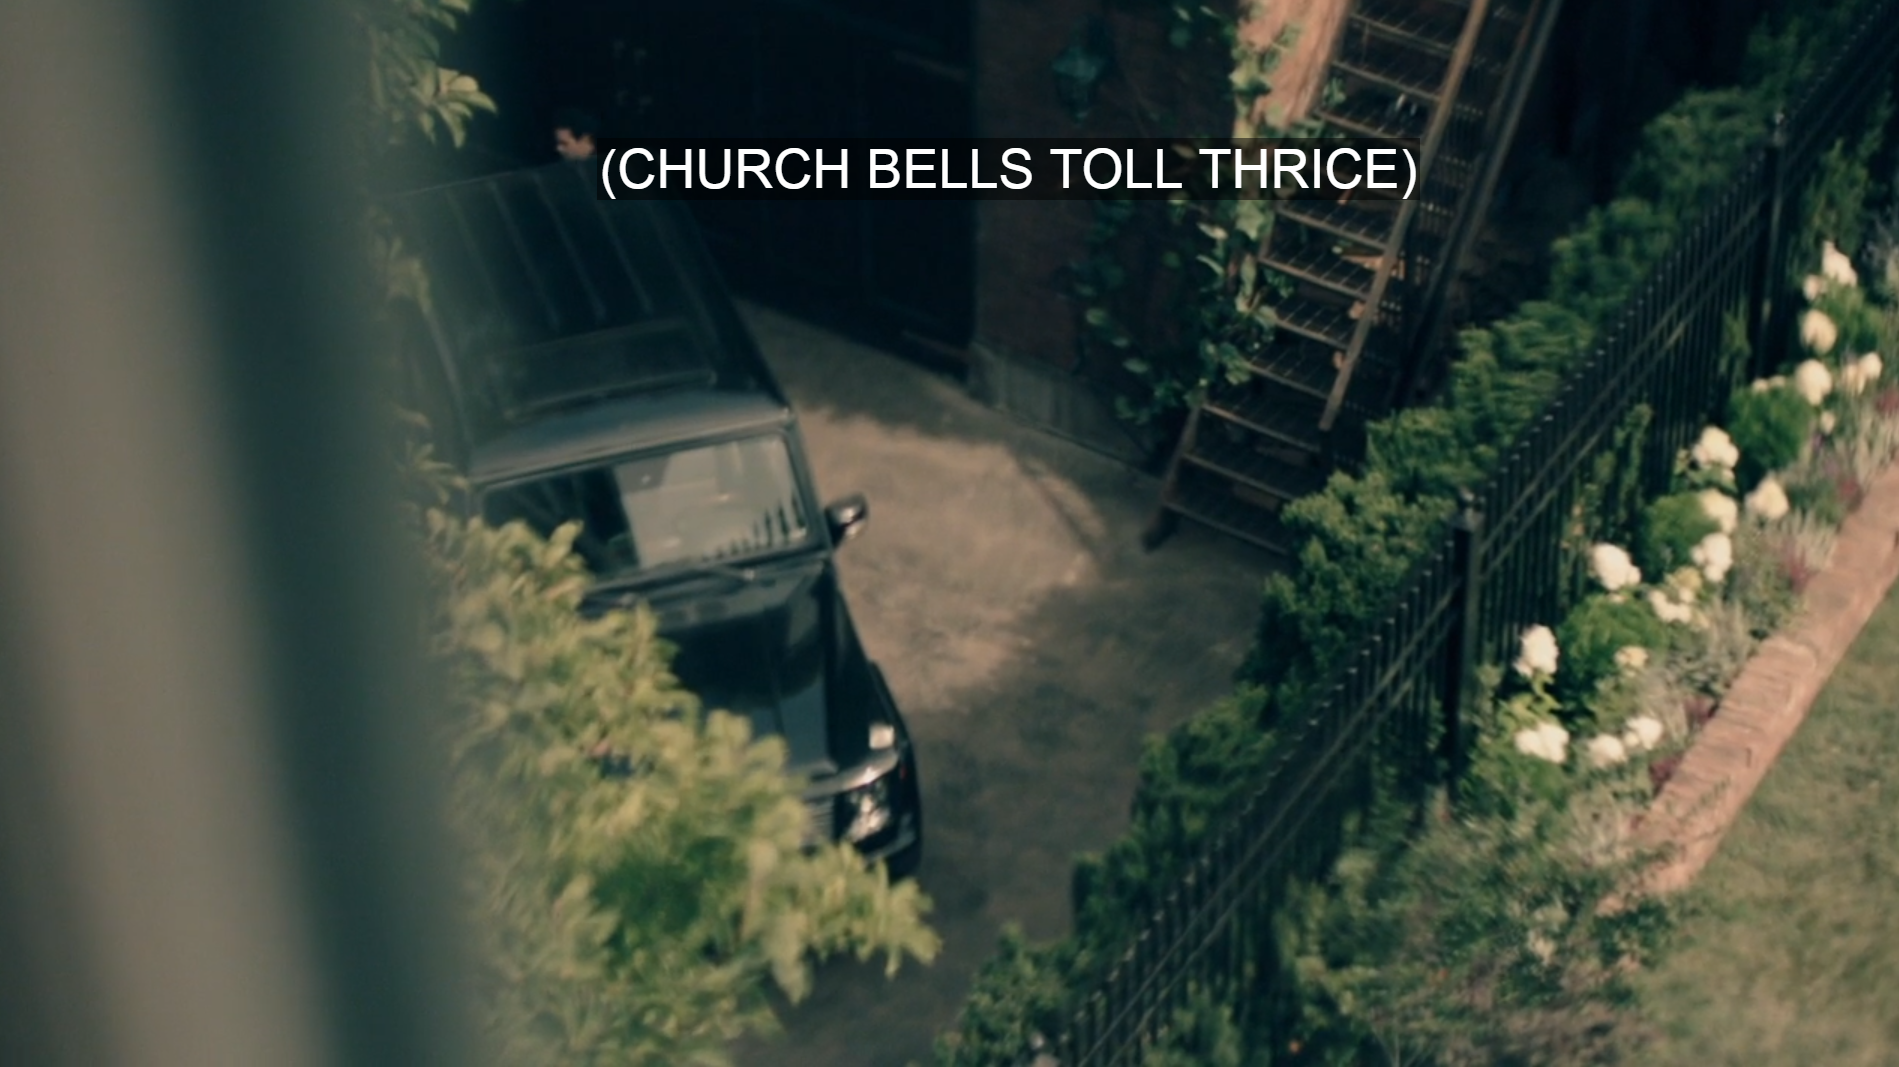 Looking down from window to SUV in a driveway by a garden. Caption: (CHURCH BELLS TOLL THRICE)